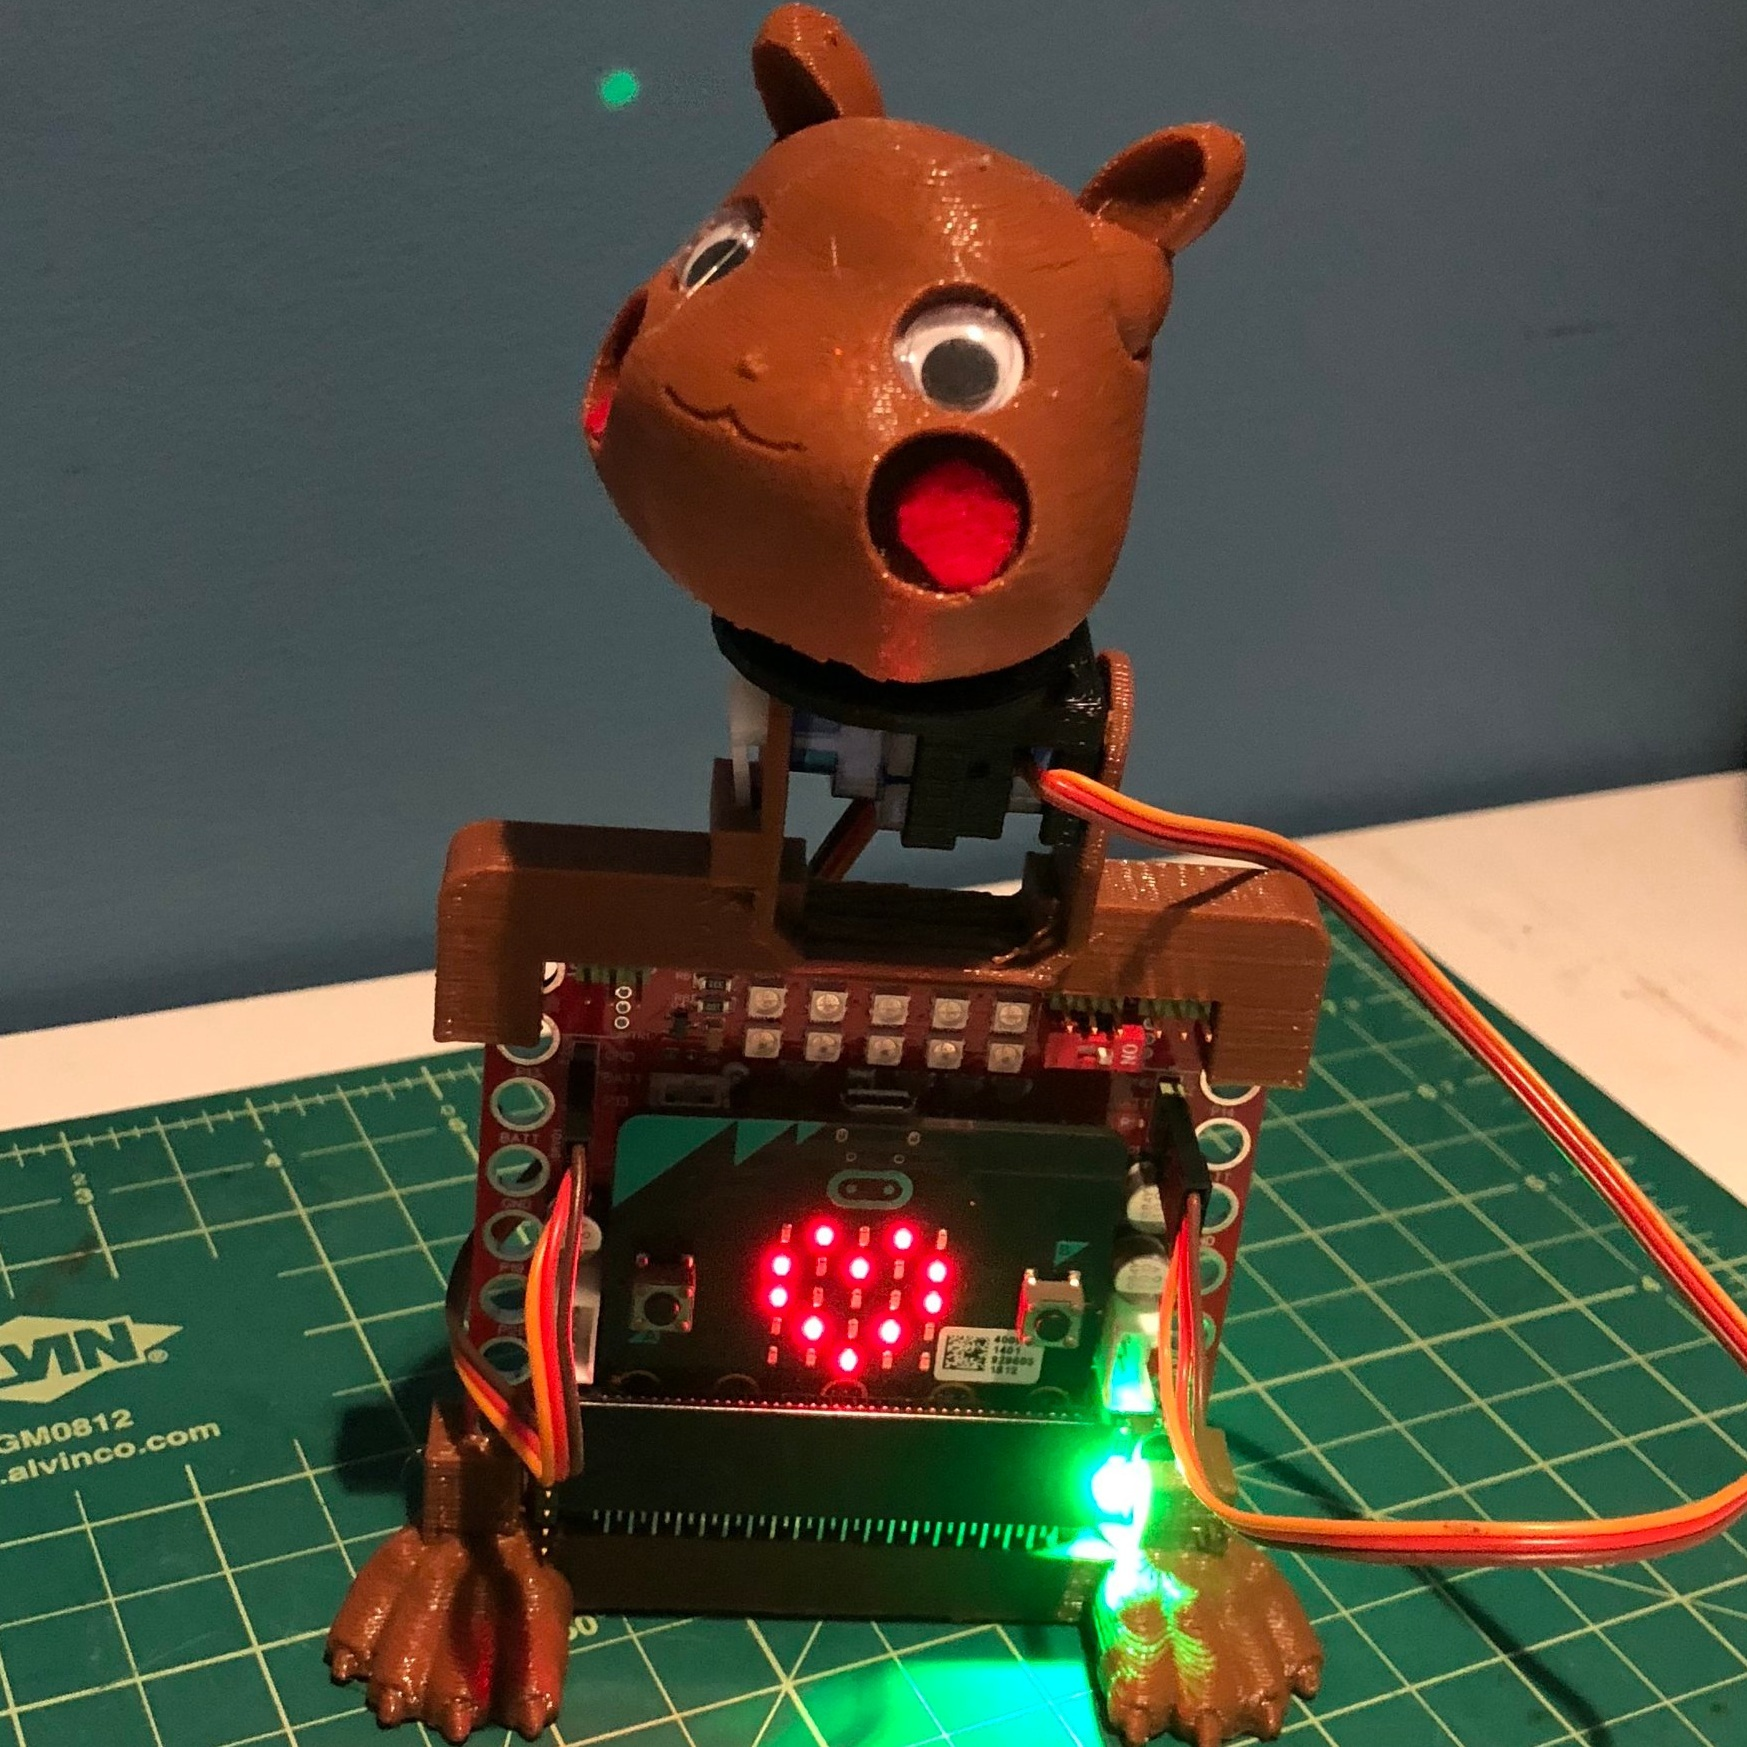 Tinkercad files available here  https://www.tinkercad.com/things/hN2YOAsHZdP